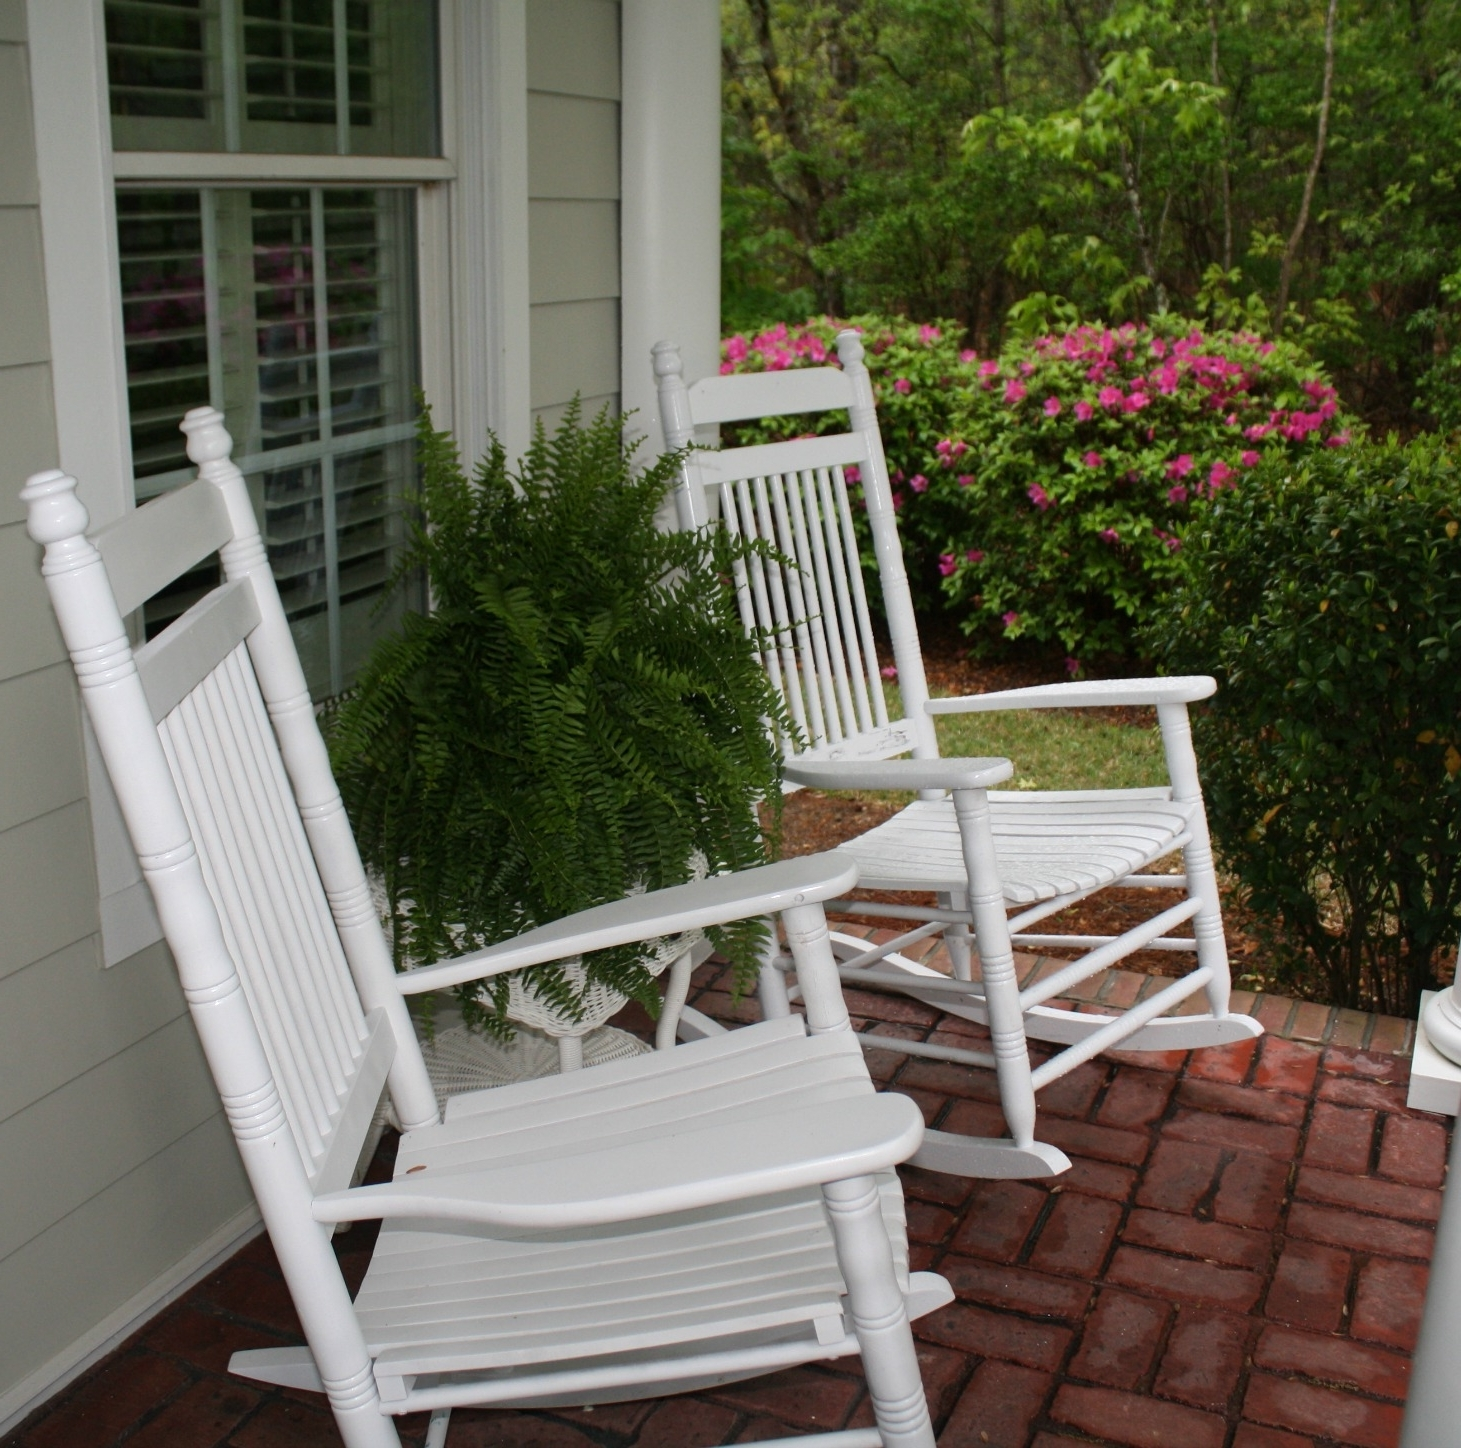 Outdoor Front Porch Rocking Chairs Patio Furniture Lighting Shades Regarding Most Current Small Patio Rocking Chairs (View 8 of 15)